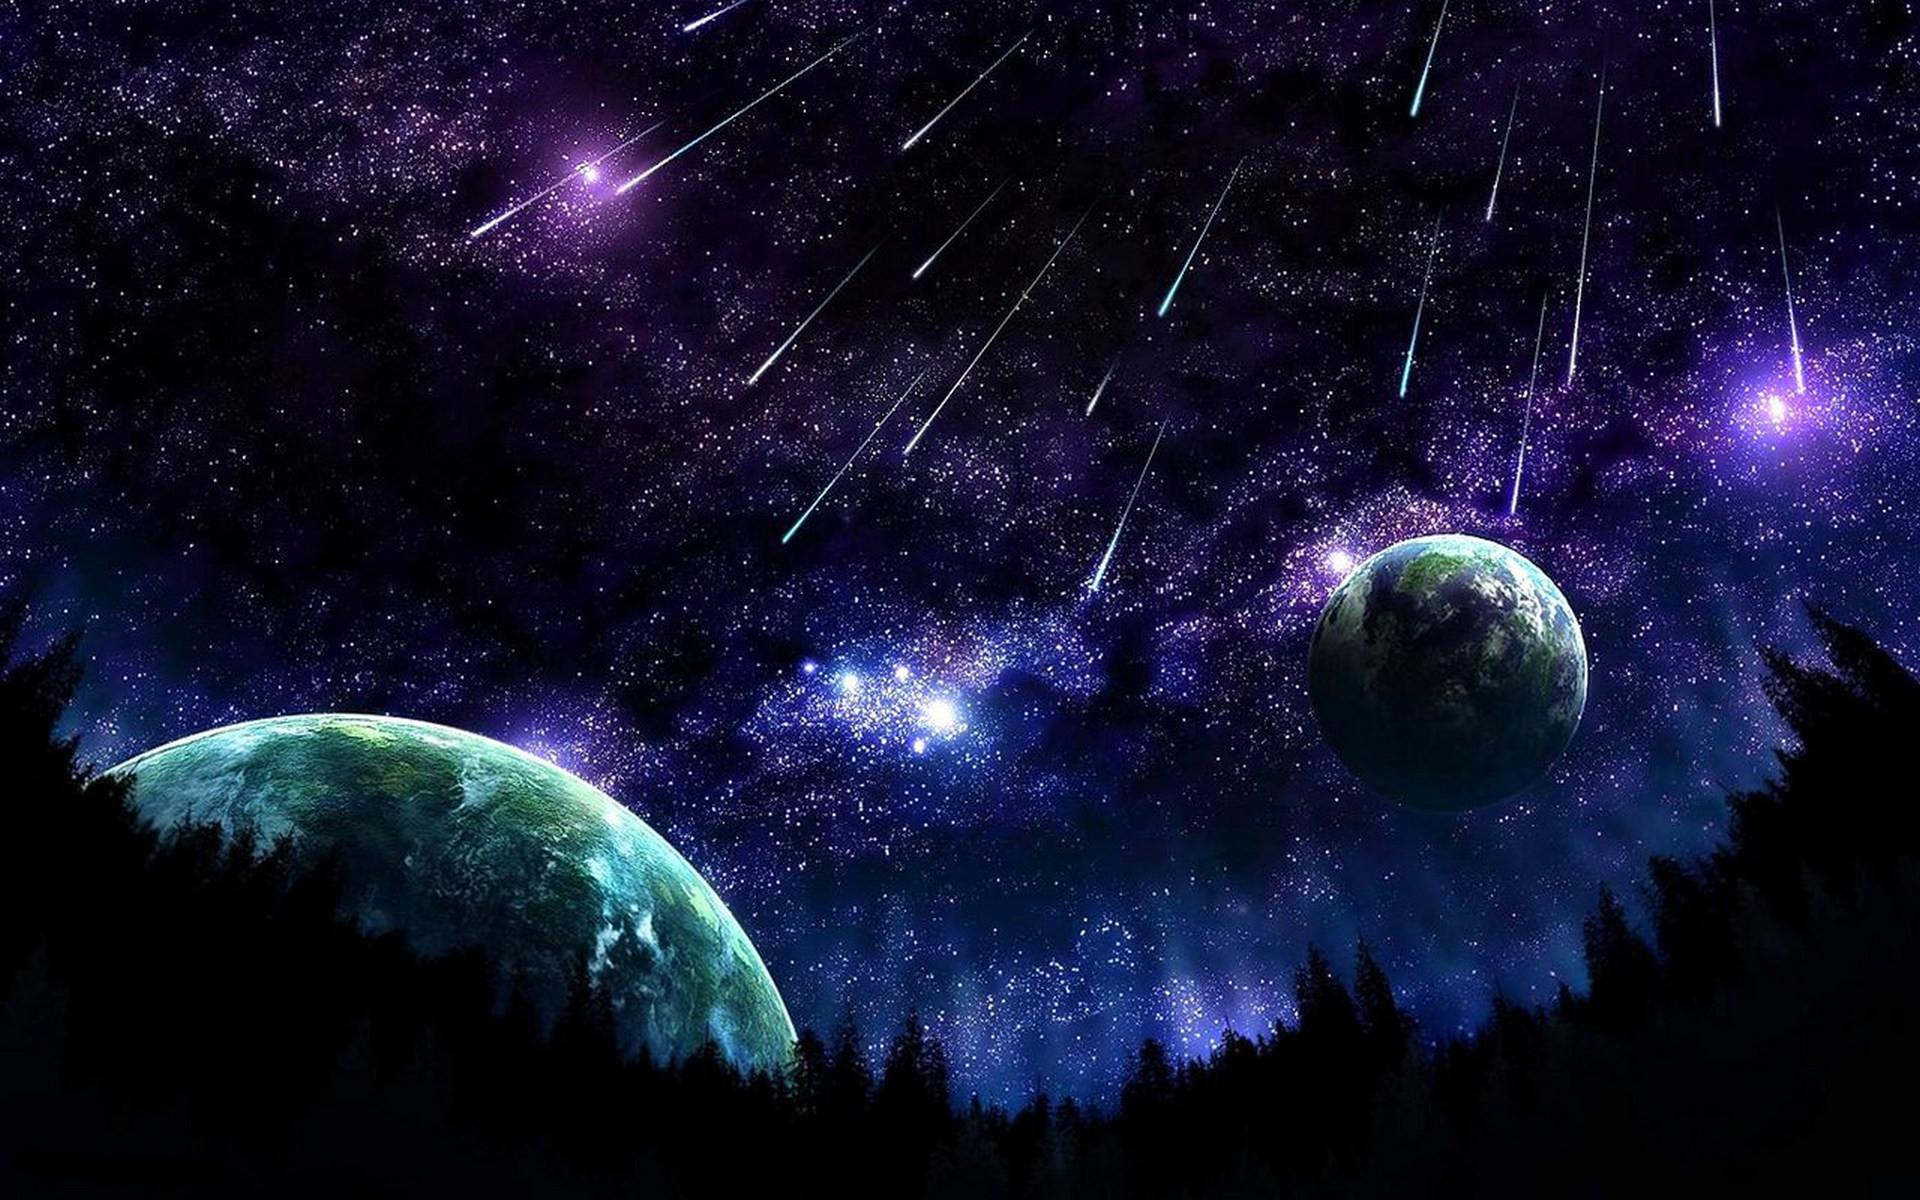 Free desktop wallpapers and backgrounds with meteor shower, cosmos, planet,  space, universe. Wallpapers no.